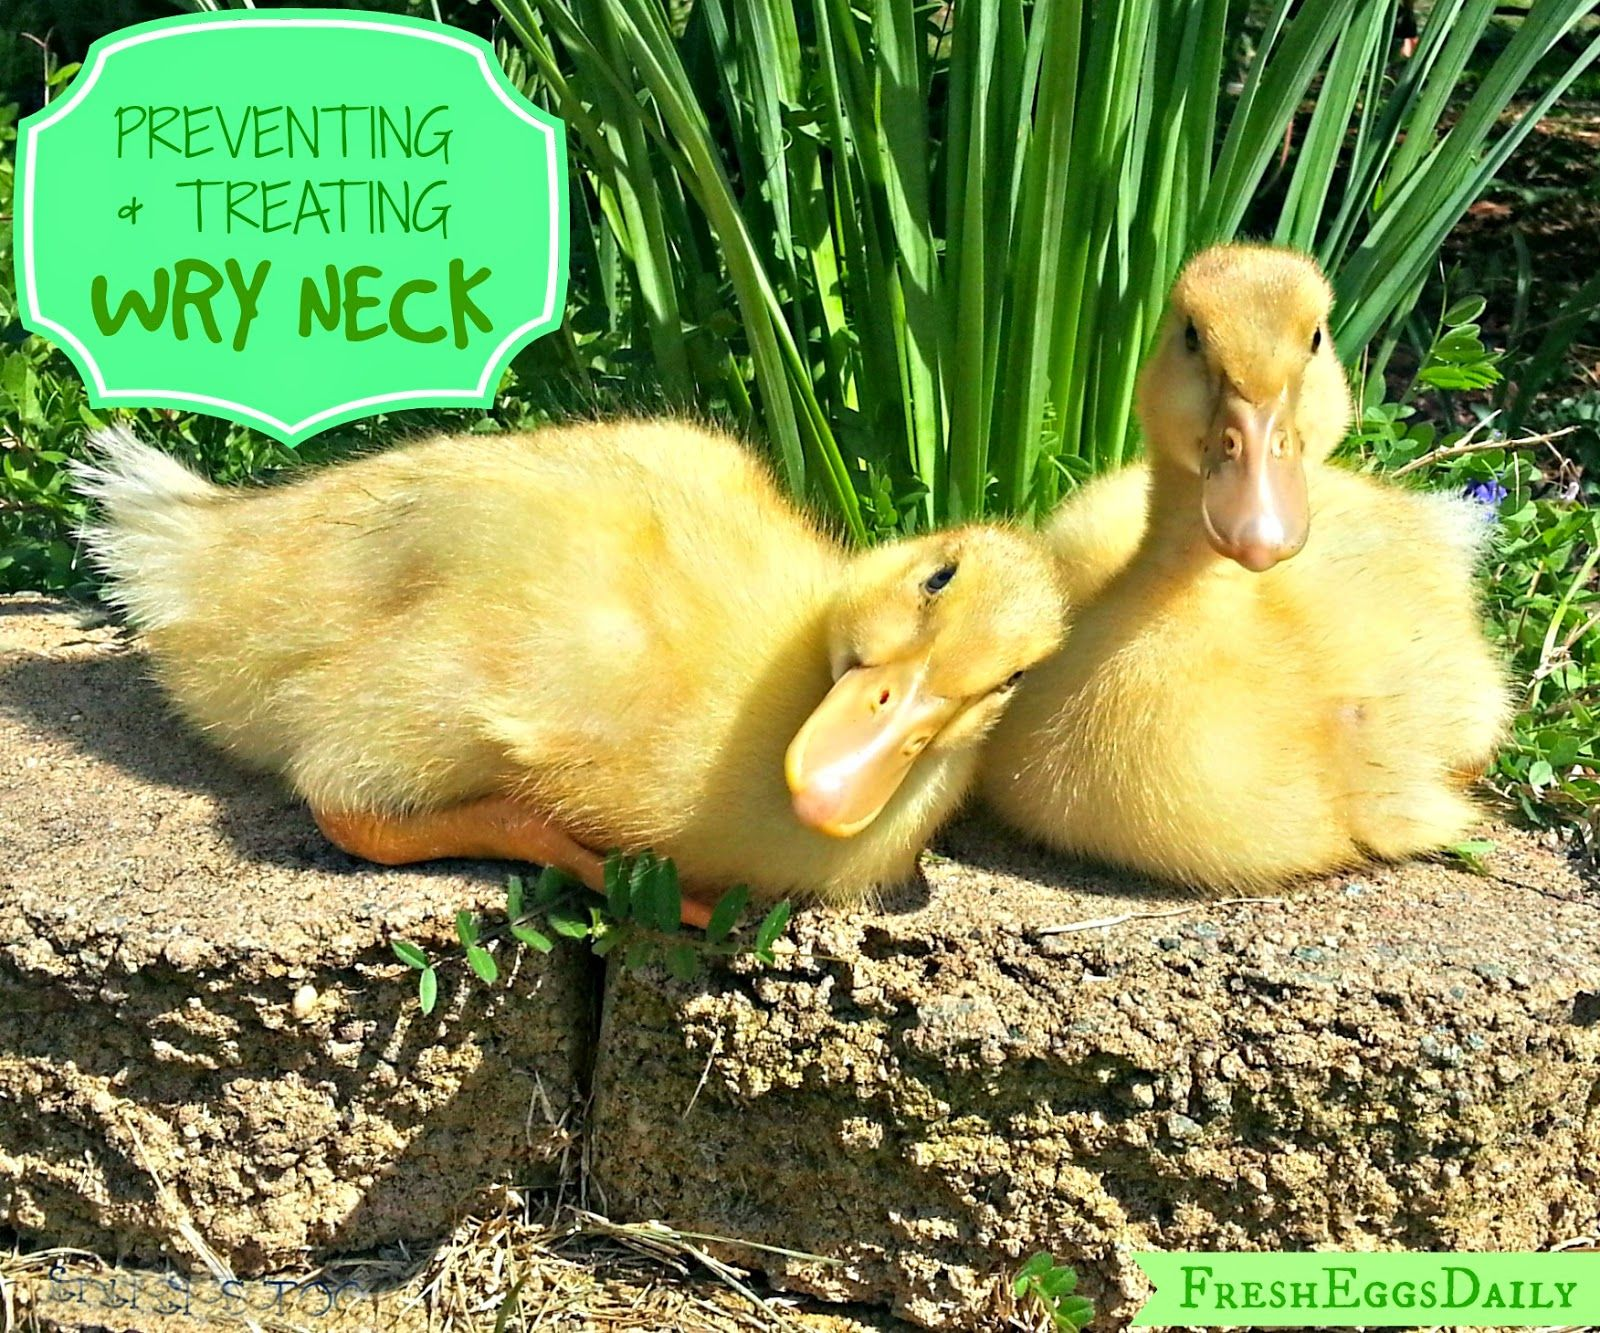 Preventing and Treating Wry Neck in Chicks and Ducklings | Fresh Eggs Daily®